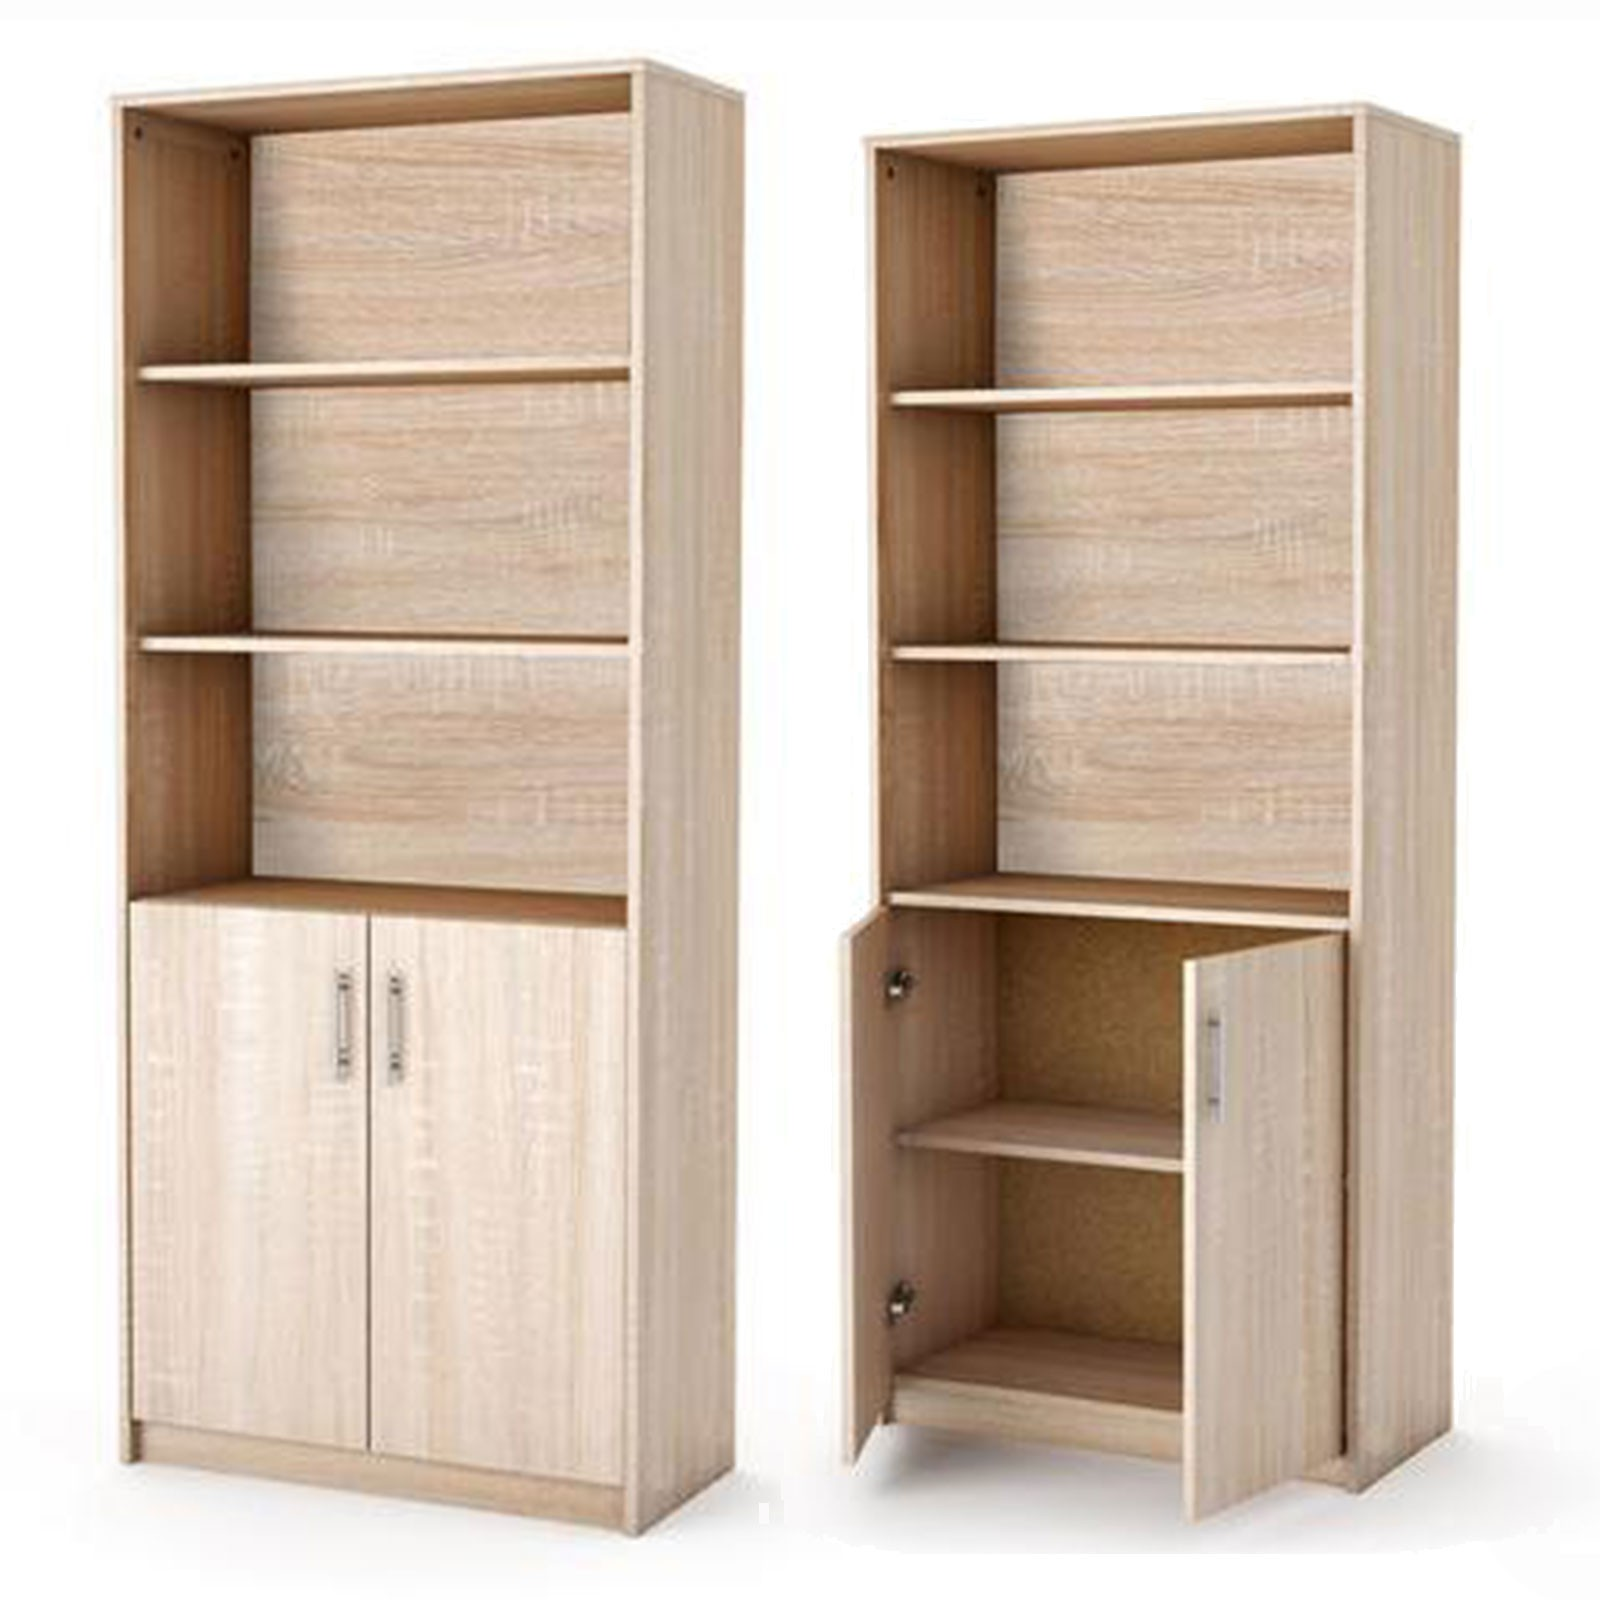 mehrzweckschrank regal kleiderschrank kommode. Black Bedroom Furniture Sets. Home Design Ideas